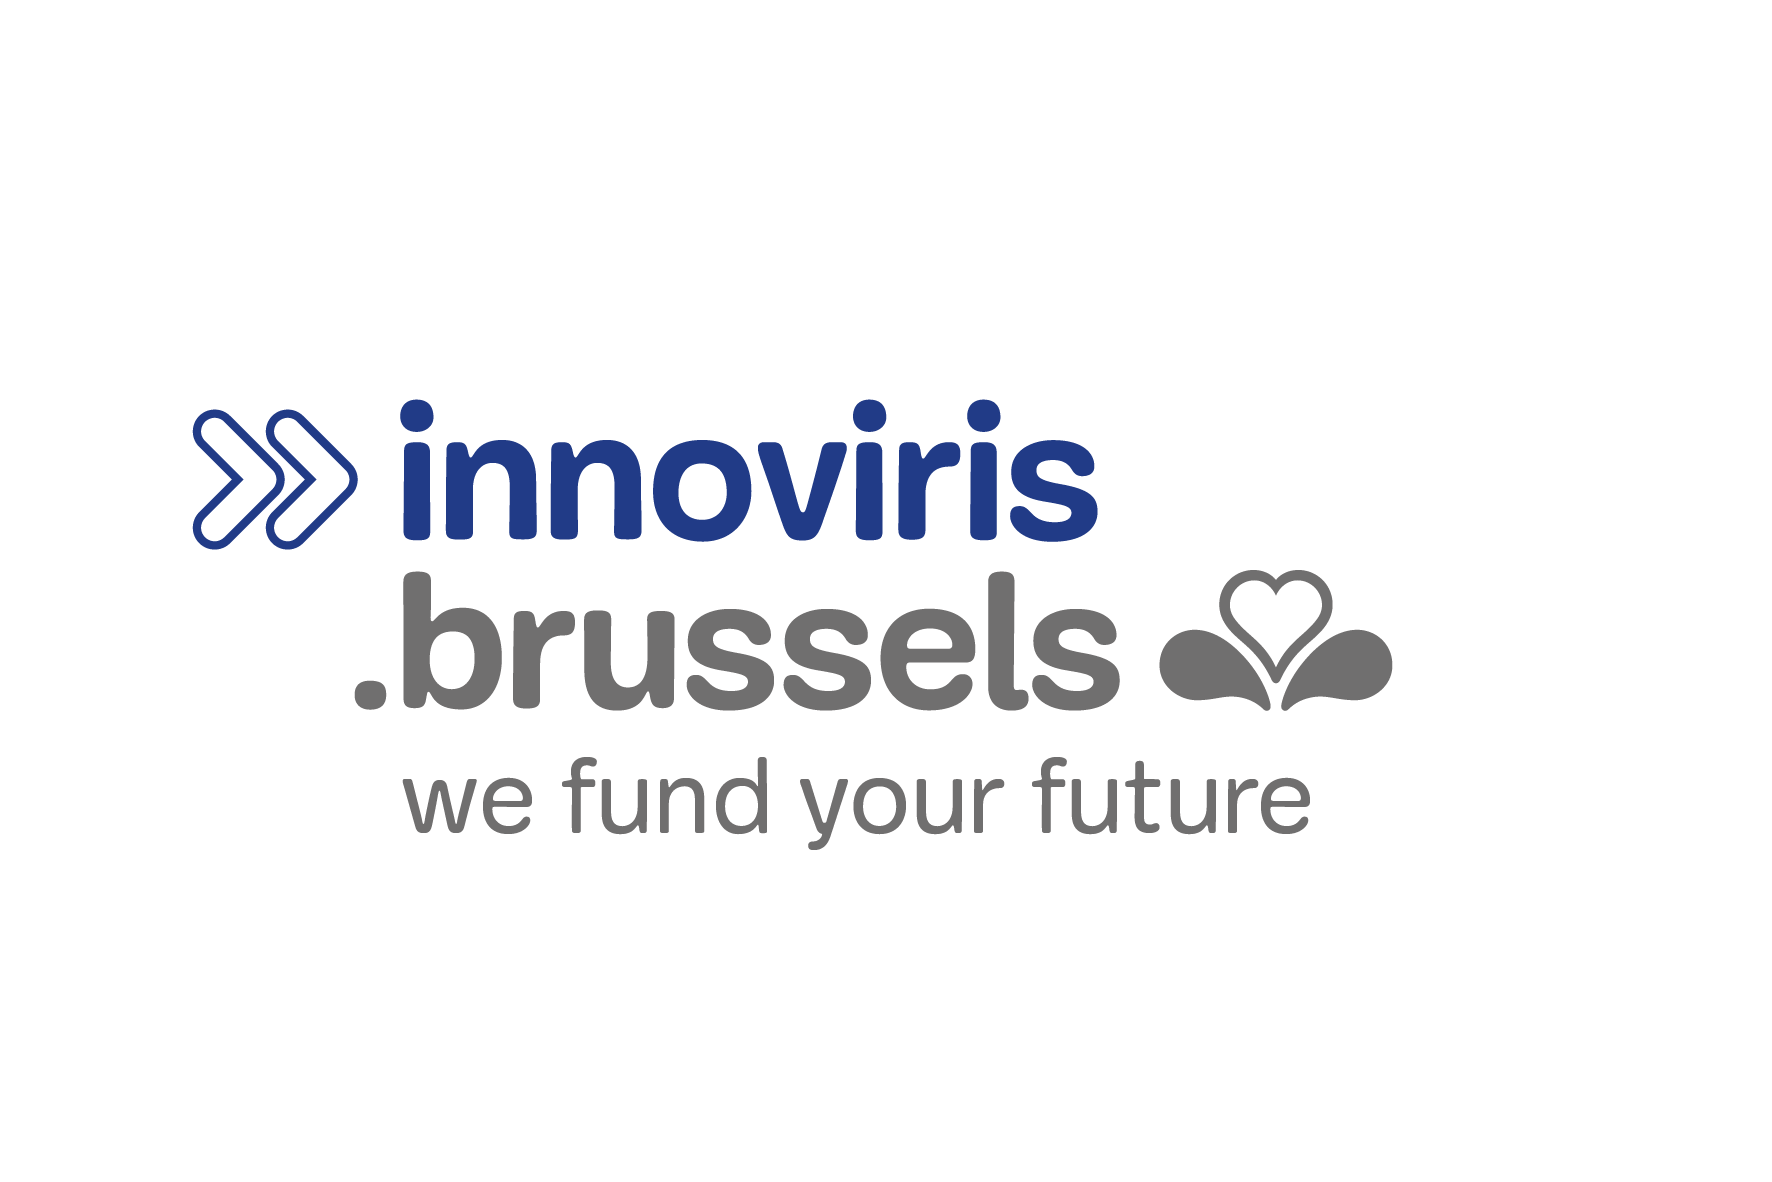 RGB_innoviris_we fund your future_MAIN LOGO